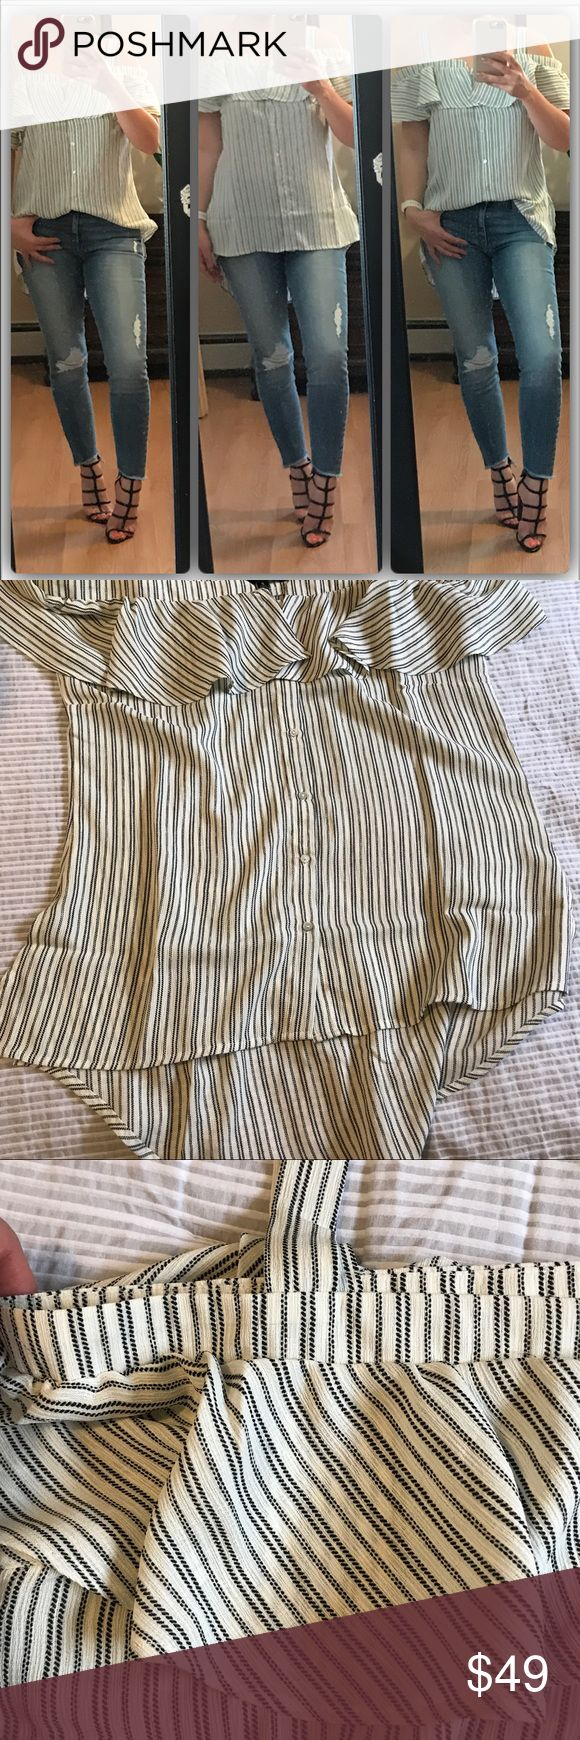 🆕🌸Cold shoulder button down Absolutely one of my fave tops today. Button down cold shoulder shirt. So pretty & feminine . Can be dressy or casual over jeans. Functional buttons. Great material and fit. Modeling small. Excellent brand Tops